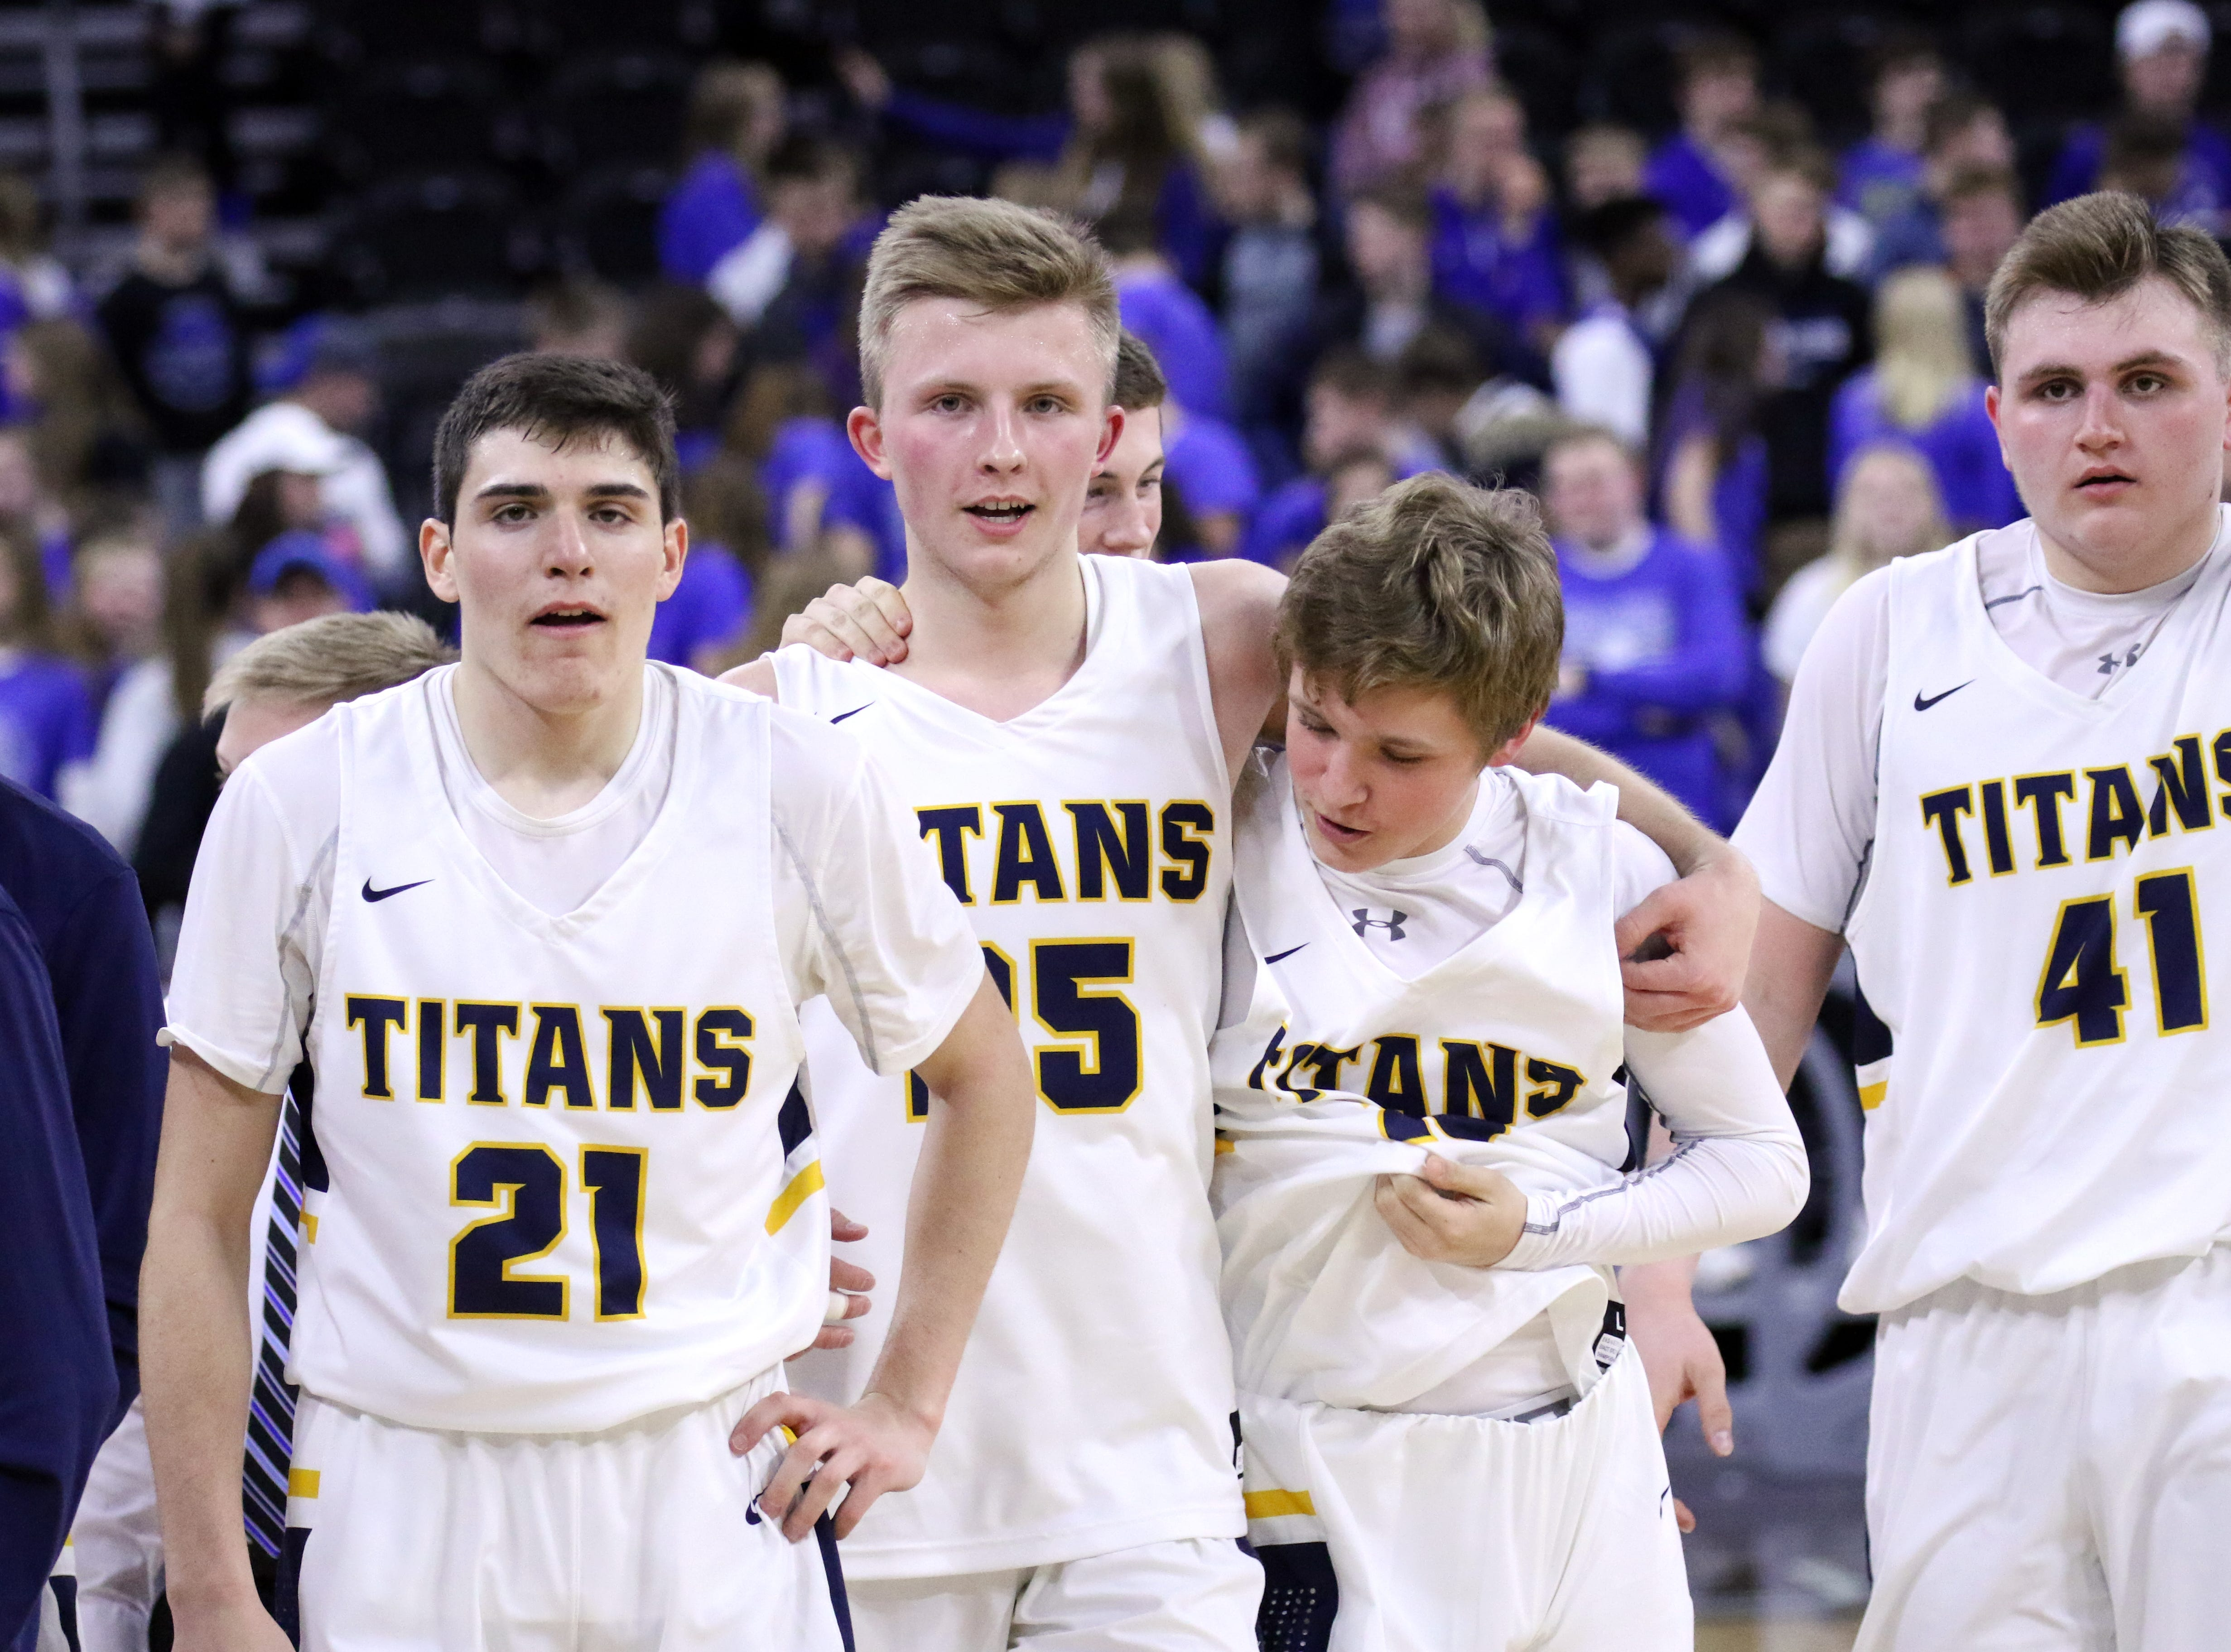 Tea Area players congratulate each other after defeating Sioux Falls Christian for the Class A title on Saturday night at the Premier Center.